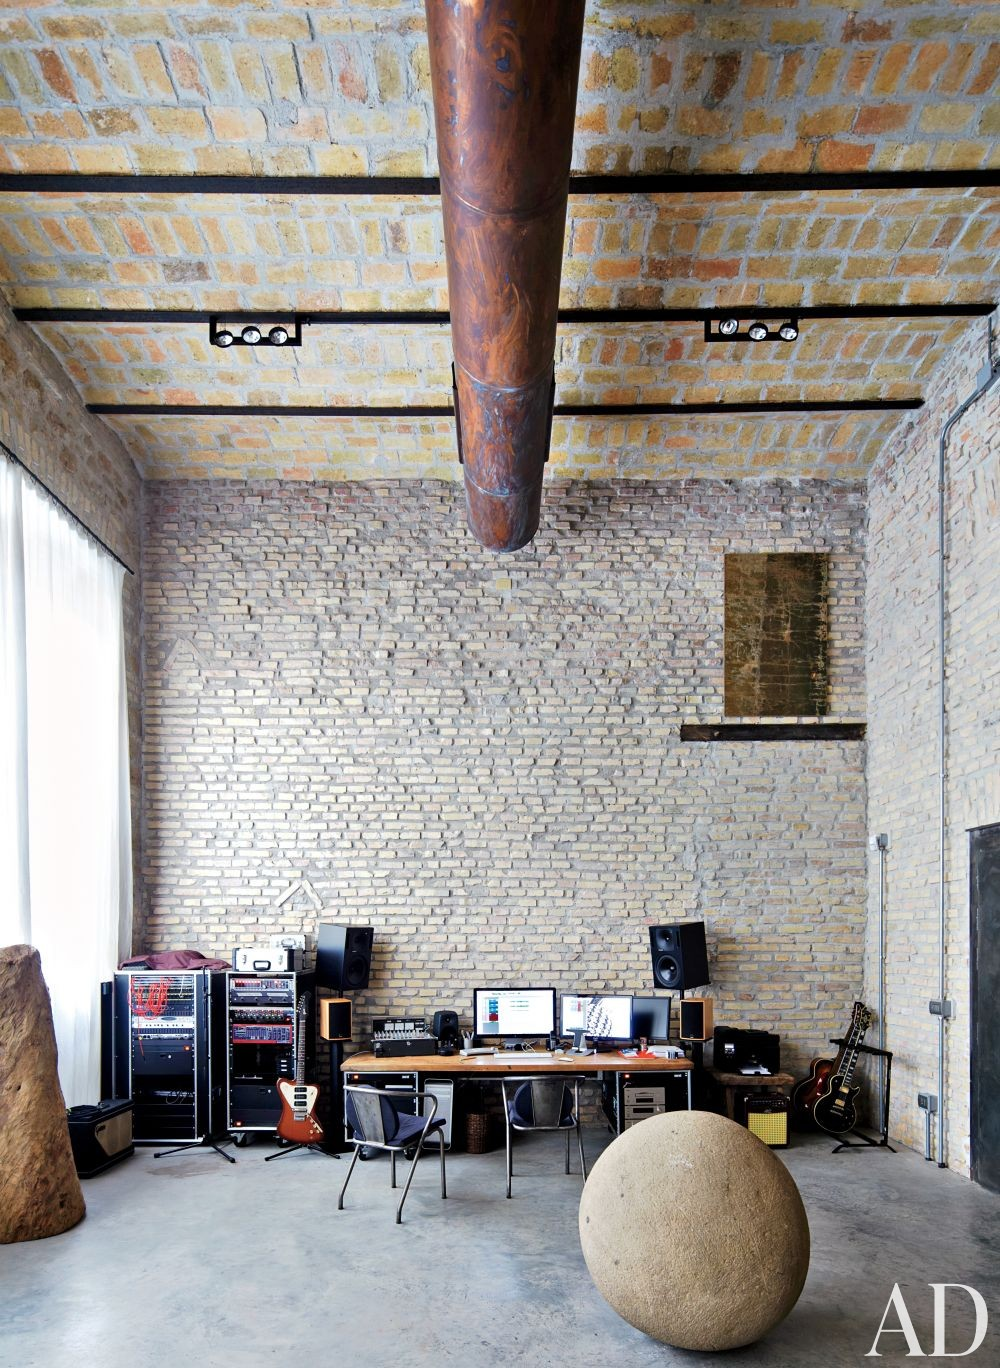 Rustic Media/Game Room by Axel Vervoordt and Alessio Lipari Architects and Serena Mignatti Architect in Rome, Italy